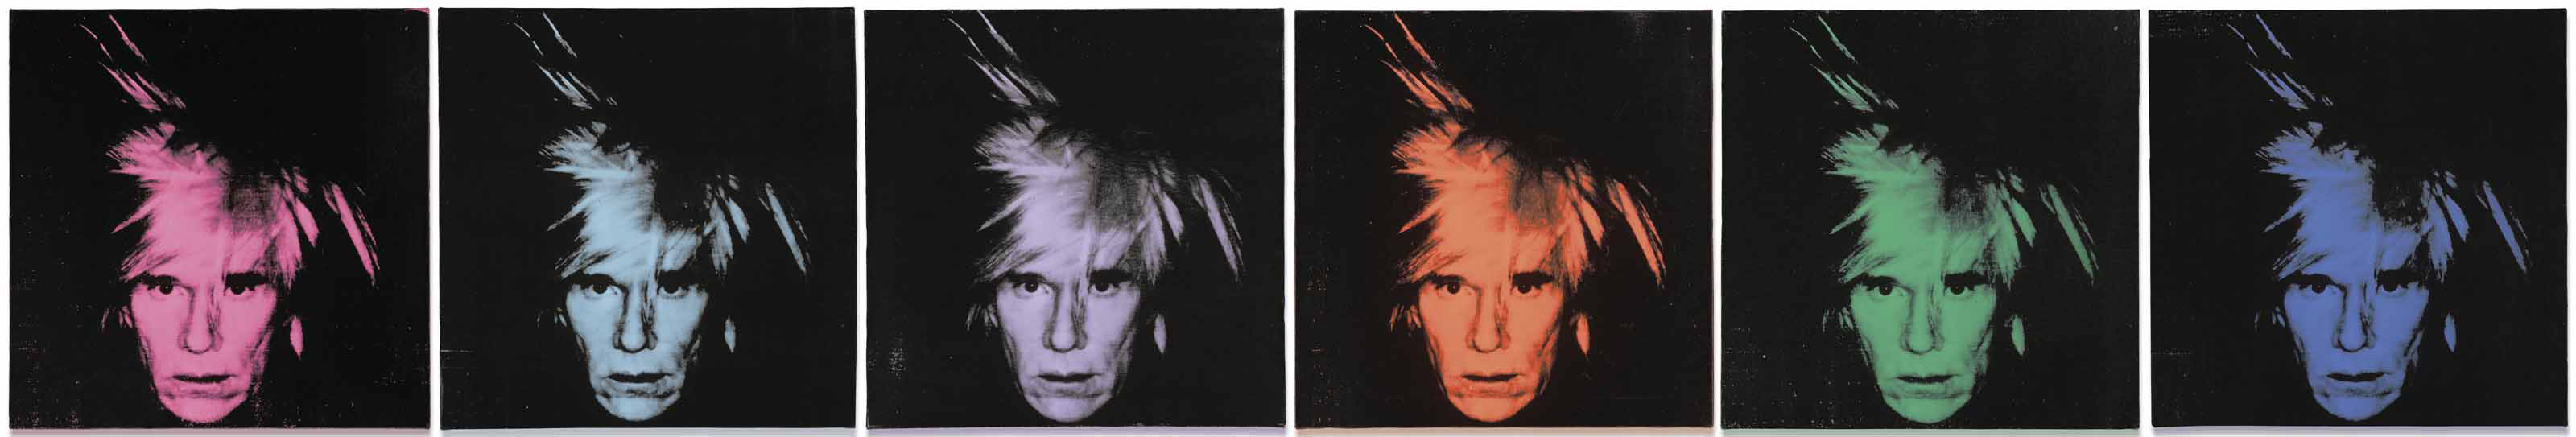 A Moment Of Sudden Revelation Andy Warhol S Six Self Portraits 1986 Christie S